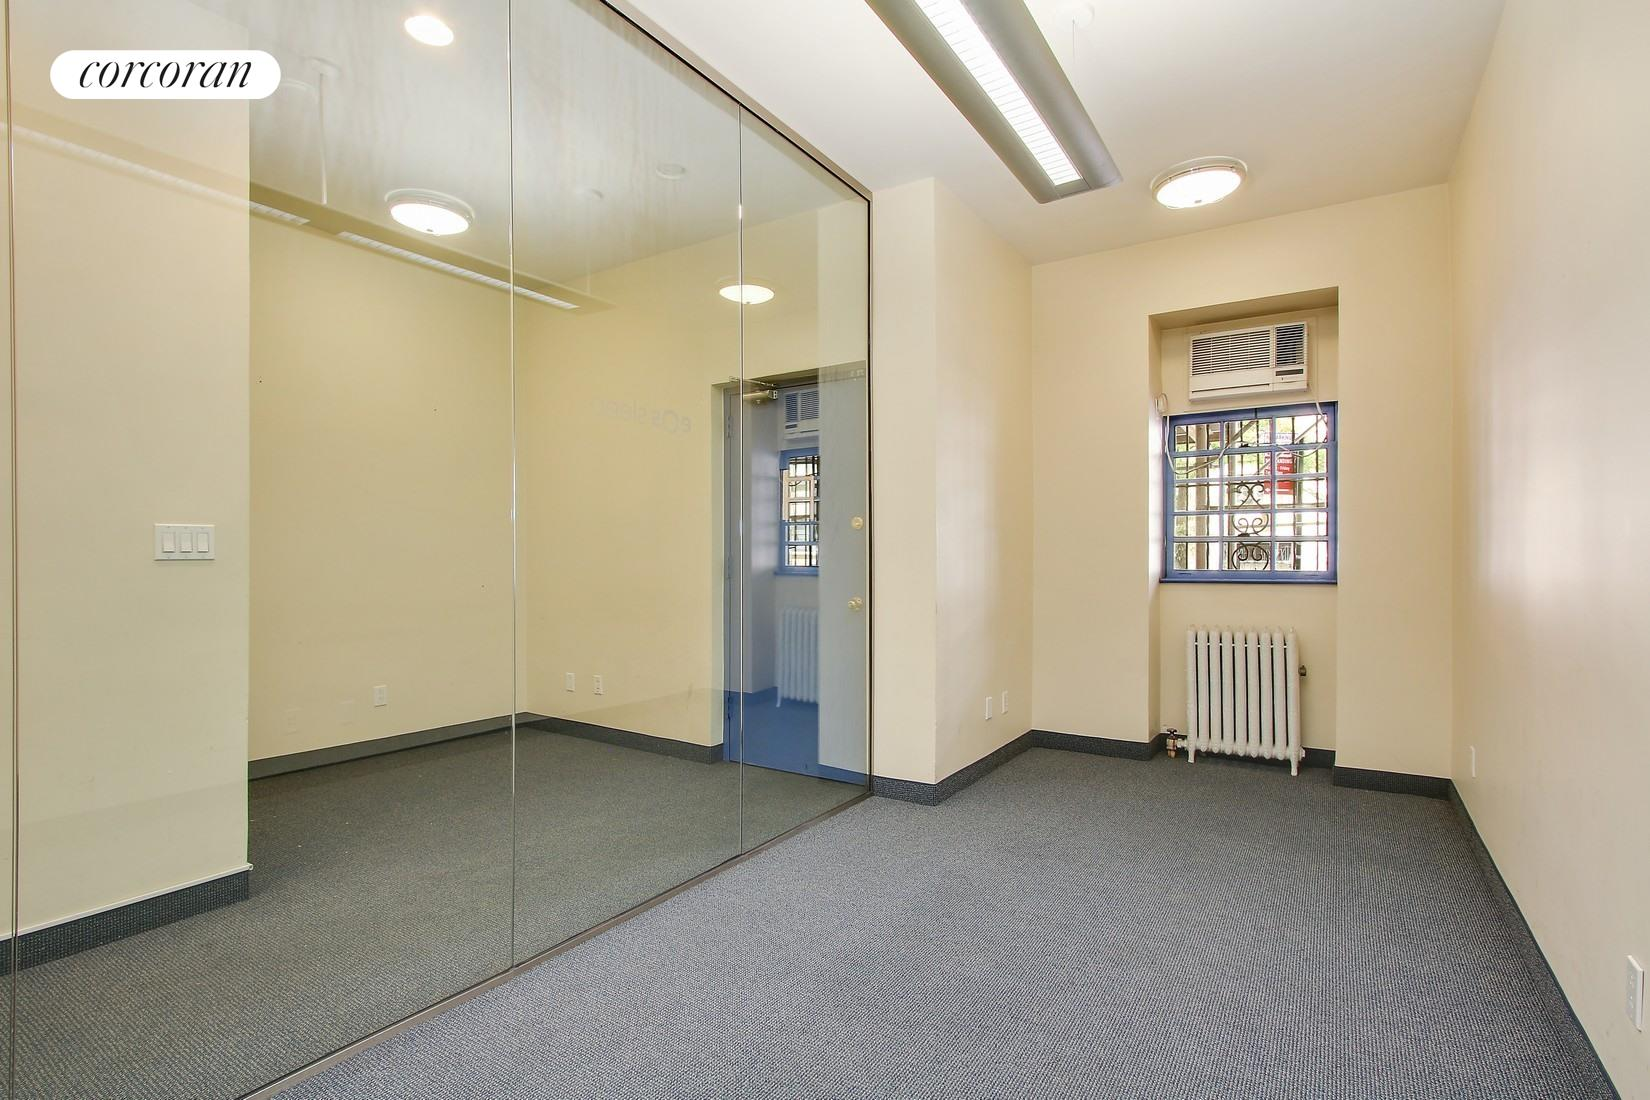 8 West 86th Street, Ground Flo, Large Waiting Area